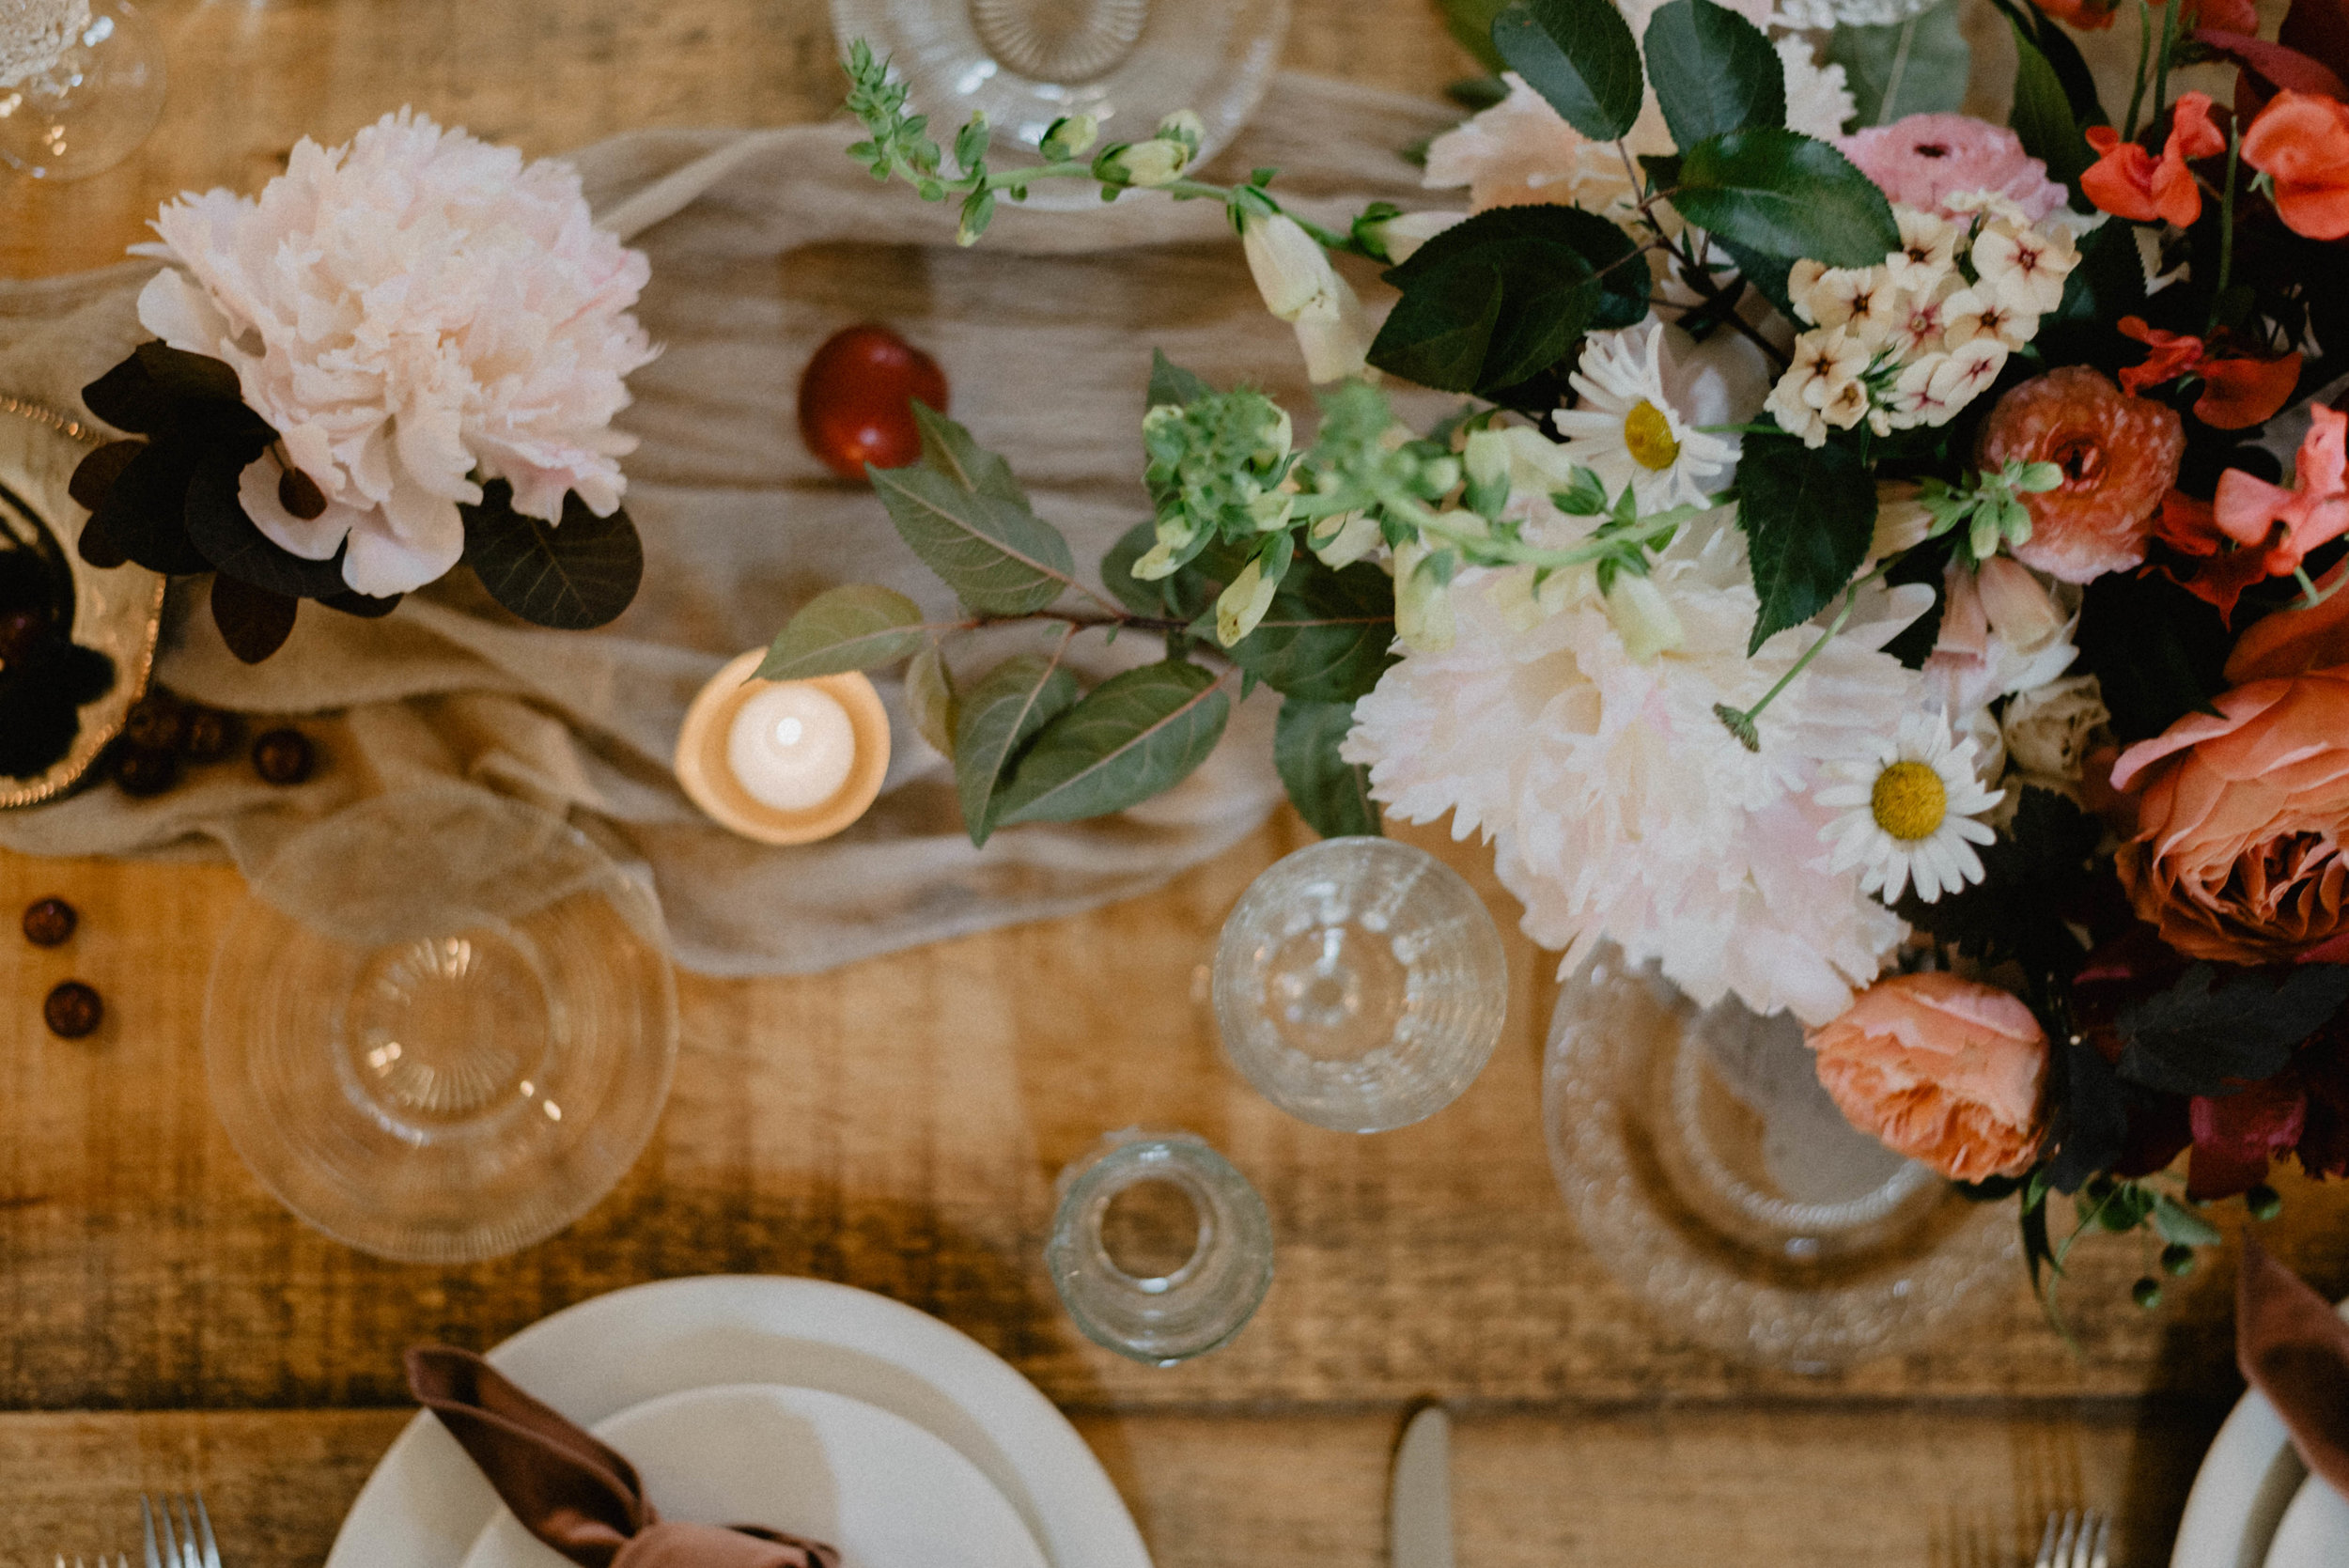 Reception table setting with florals